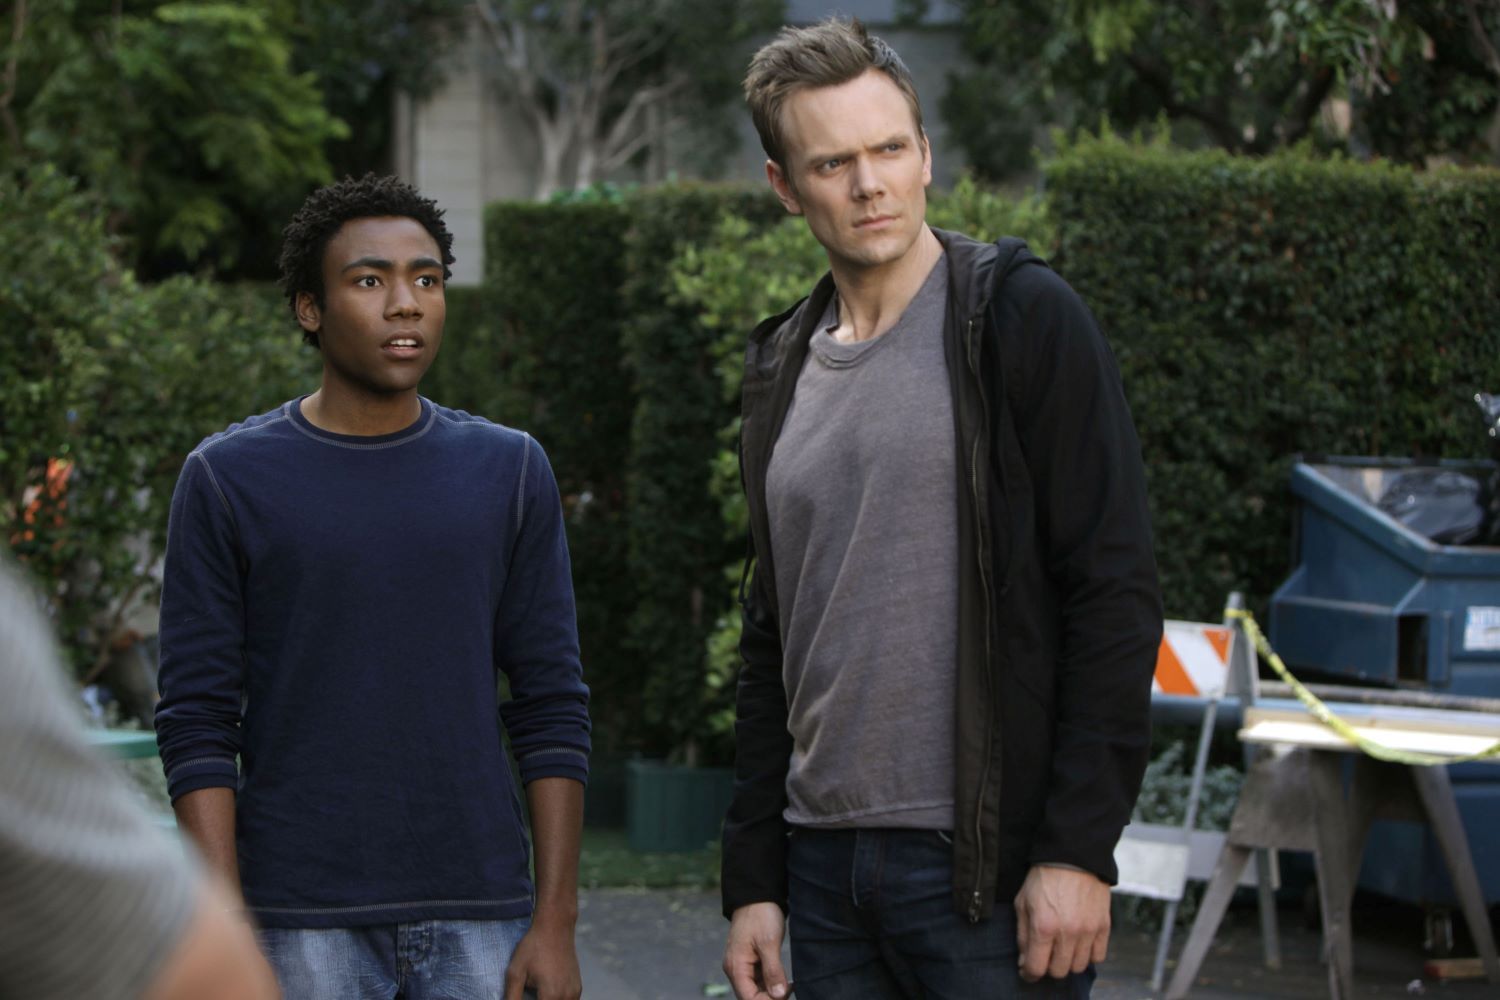 Donald Glover and Joel McHale in 'Community'